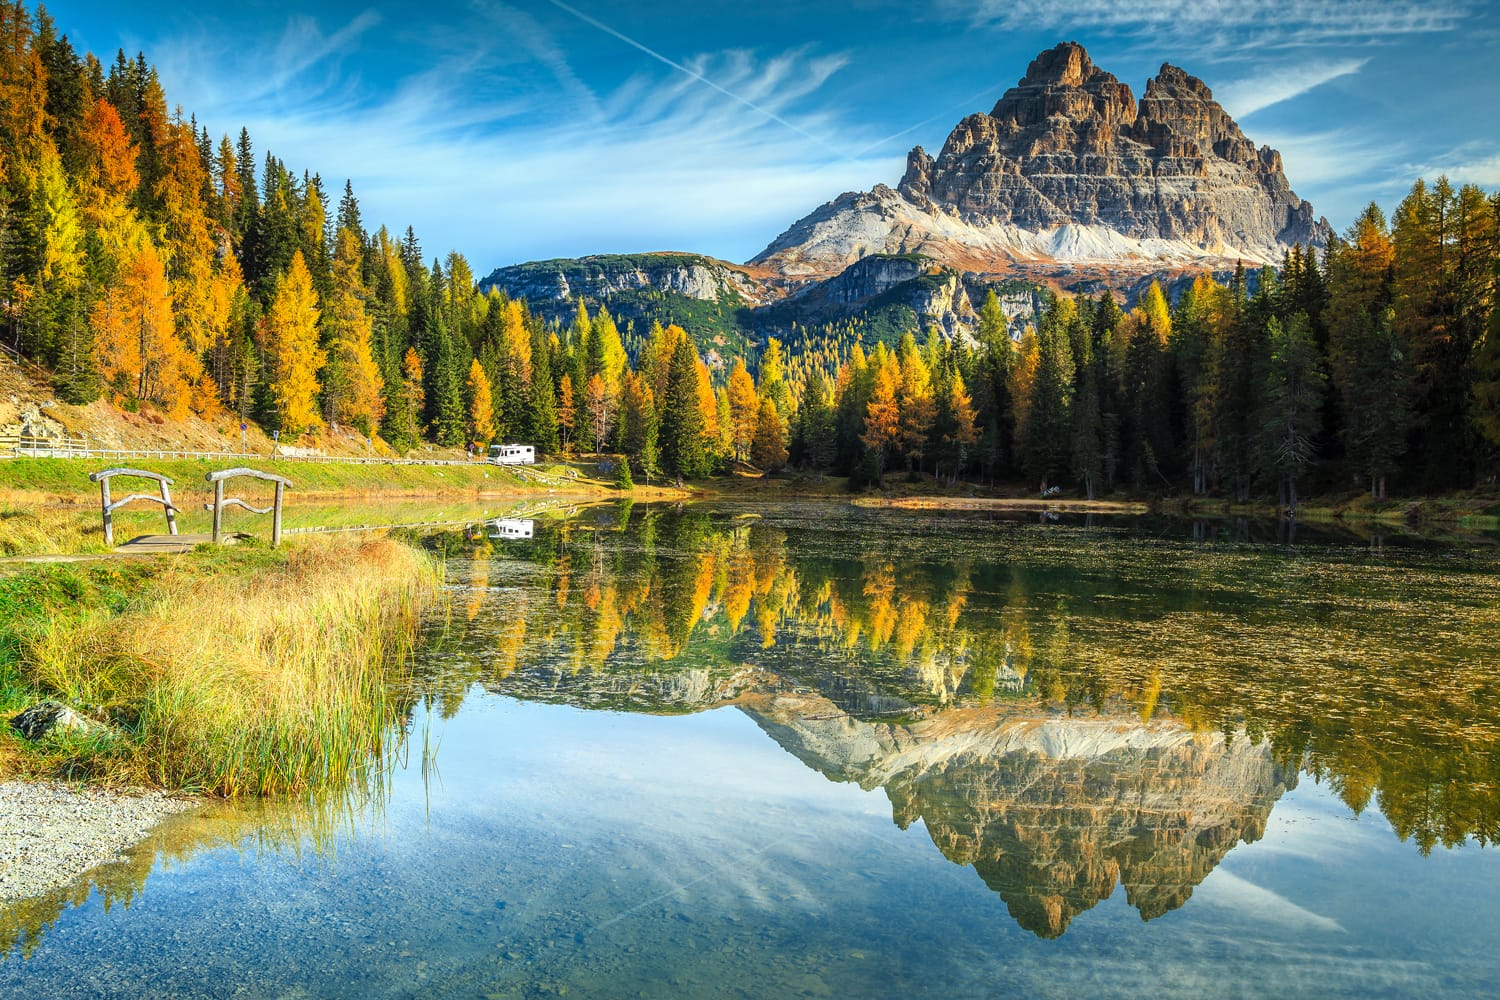 Majestic autumn landscape,alpine glacier lake and yellow pine trees, Antorno lake with famous Tre Cime di Lavaredo peaks in background, Dolomites, Italy, Europe